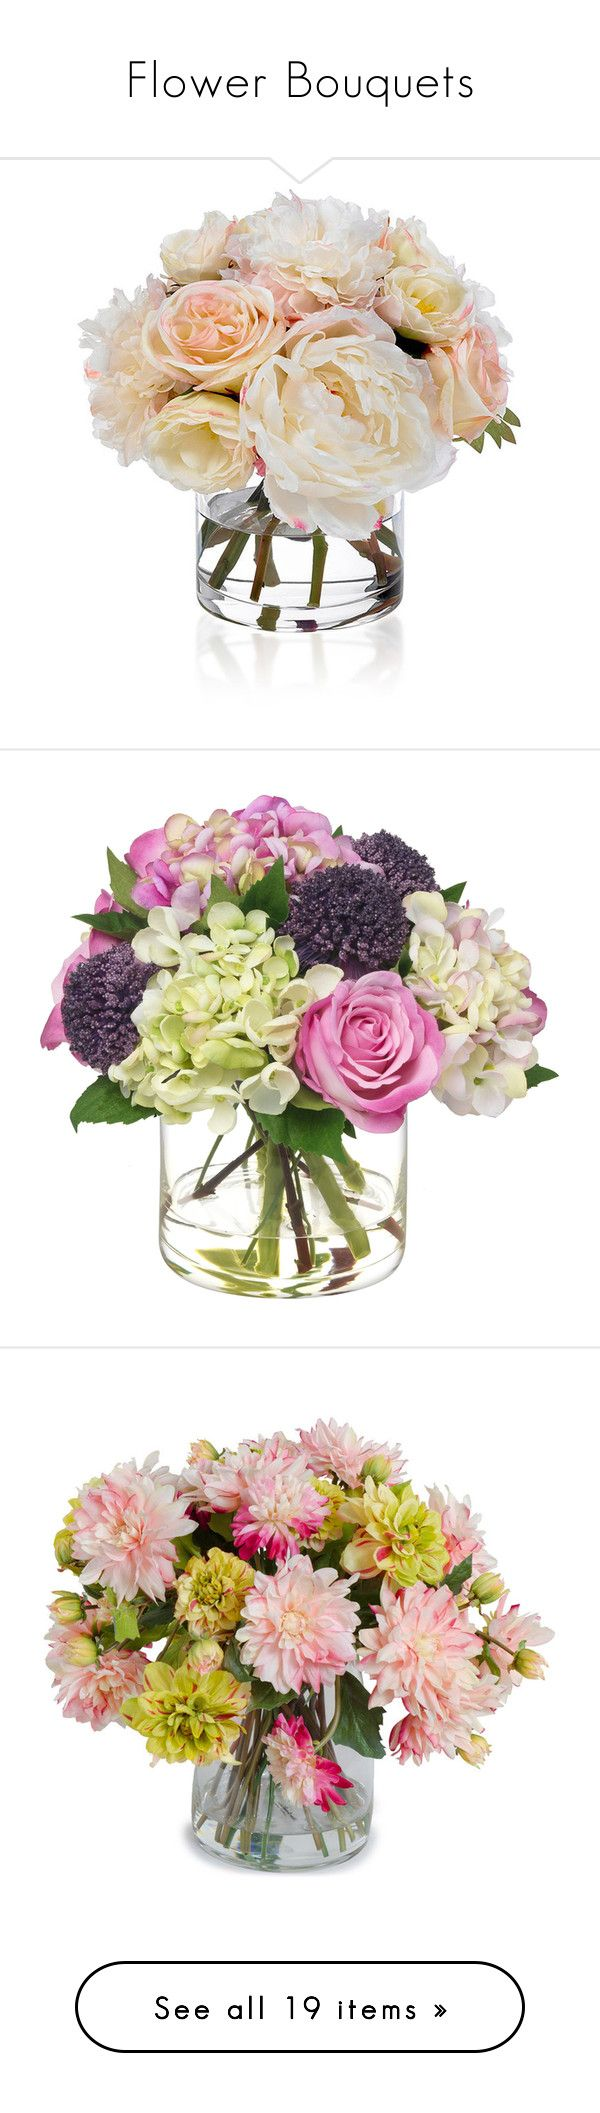 Lovely flower bouquet by anetacerna liked on polyvore featuring lovely flower bouquet by anetacerna liked on polyvore featuring home home decor floral decor silk peony bouquet fake peony arrangement sil izmirmasajfo Images